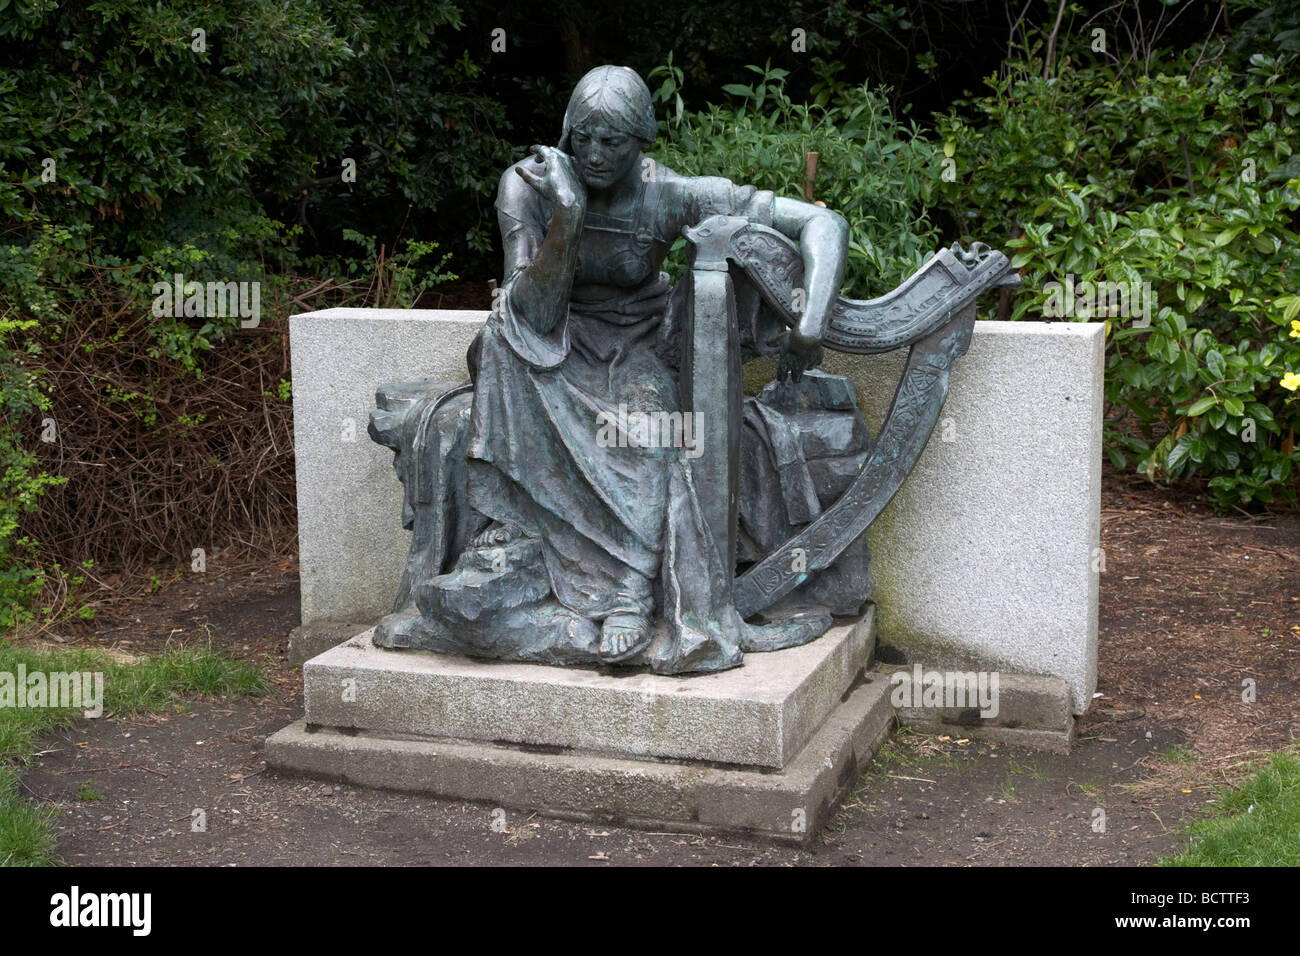 eire statue in archbishop ryan park merrion square dublin republic of ireland - Stock Image